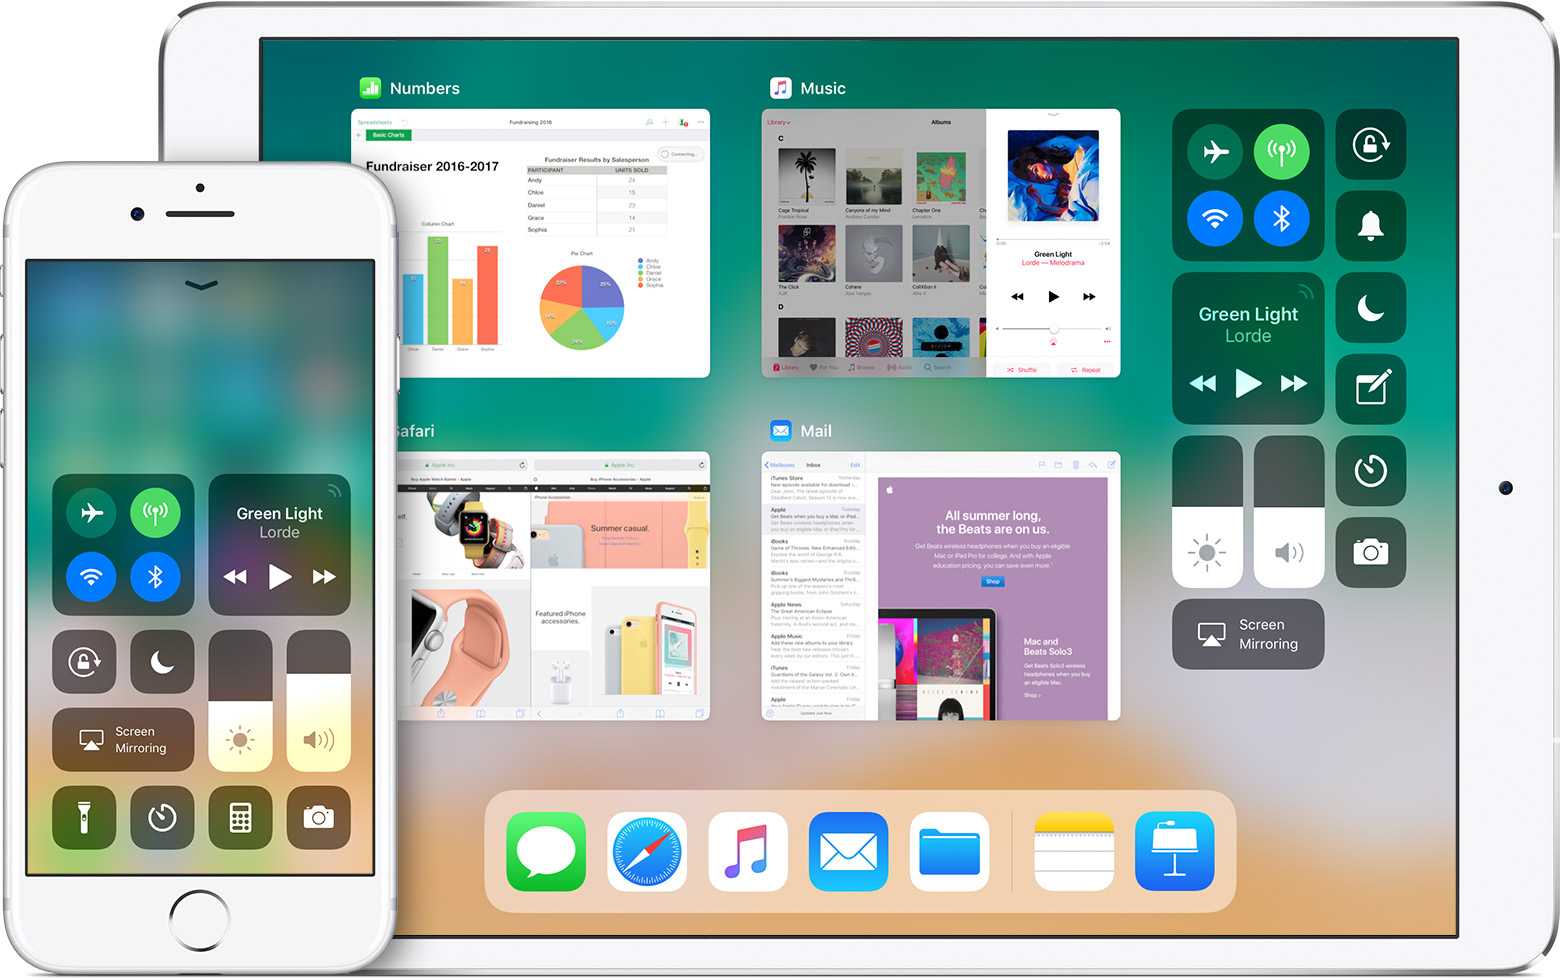 Use and customize control center on your iphone ipad and ipod use and customize control center on your iphone ipad and ipod touch apple support biocorpaavc